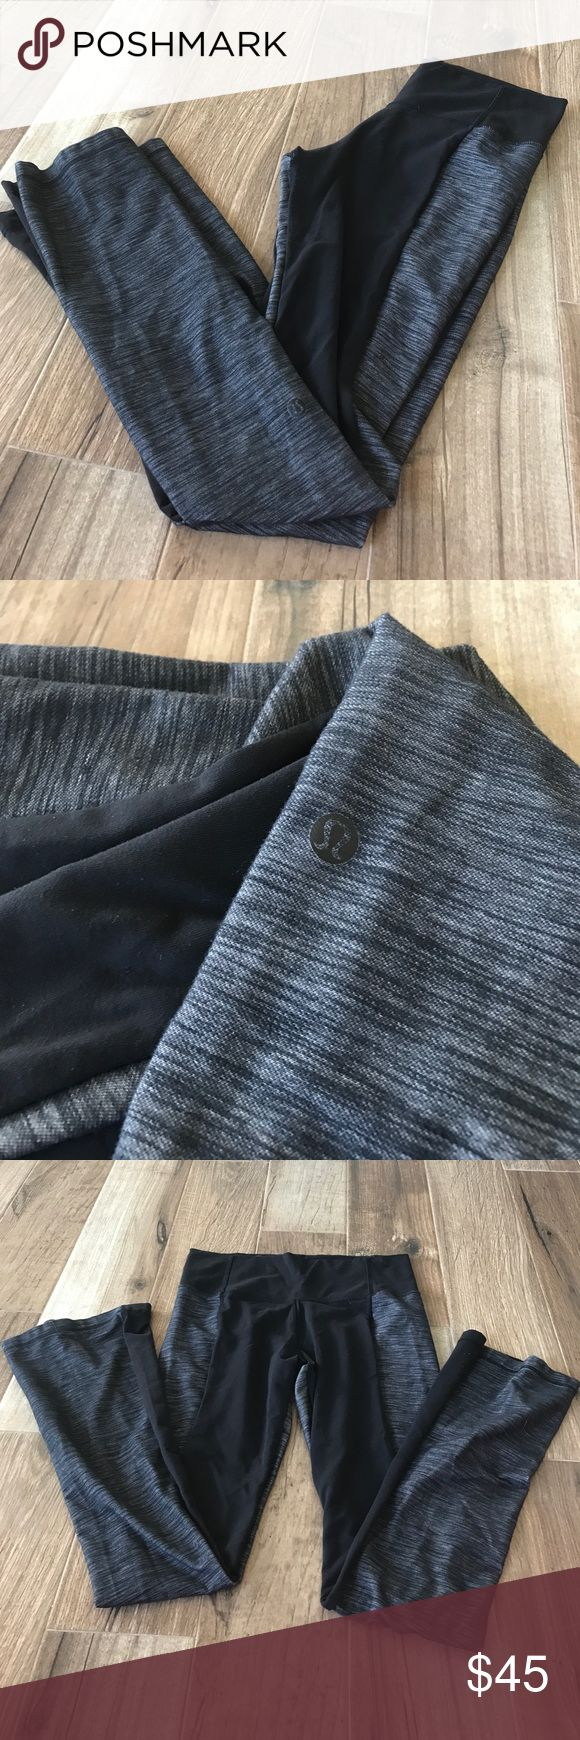 lululemon workout pants Gently worn lululemon dark grey and black bootcut leggings! Size 10. Some piling in thighs but not noticeable (see photo). Only worn a few times for a fitness competition. lululemon athletica Pants